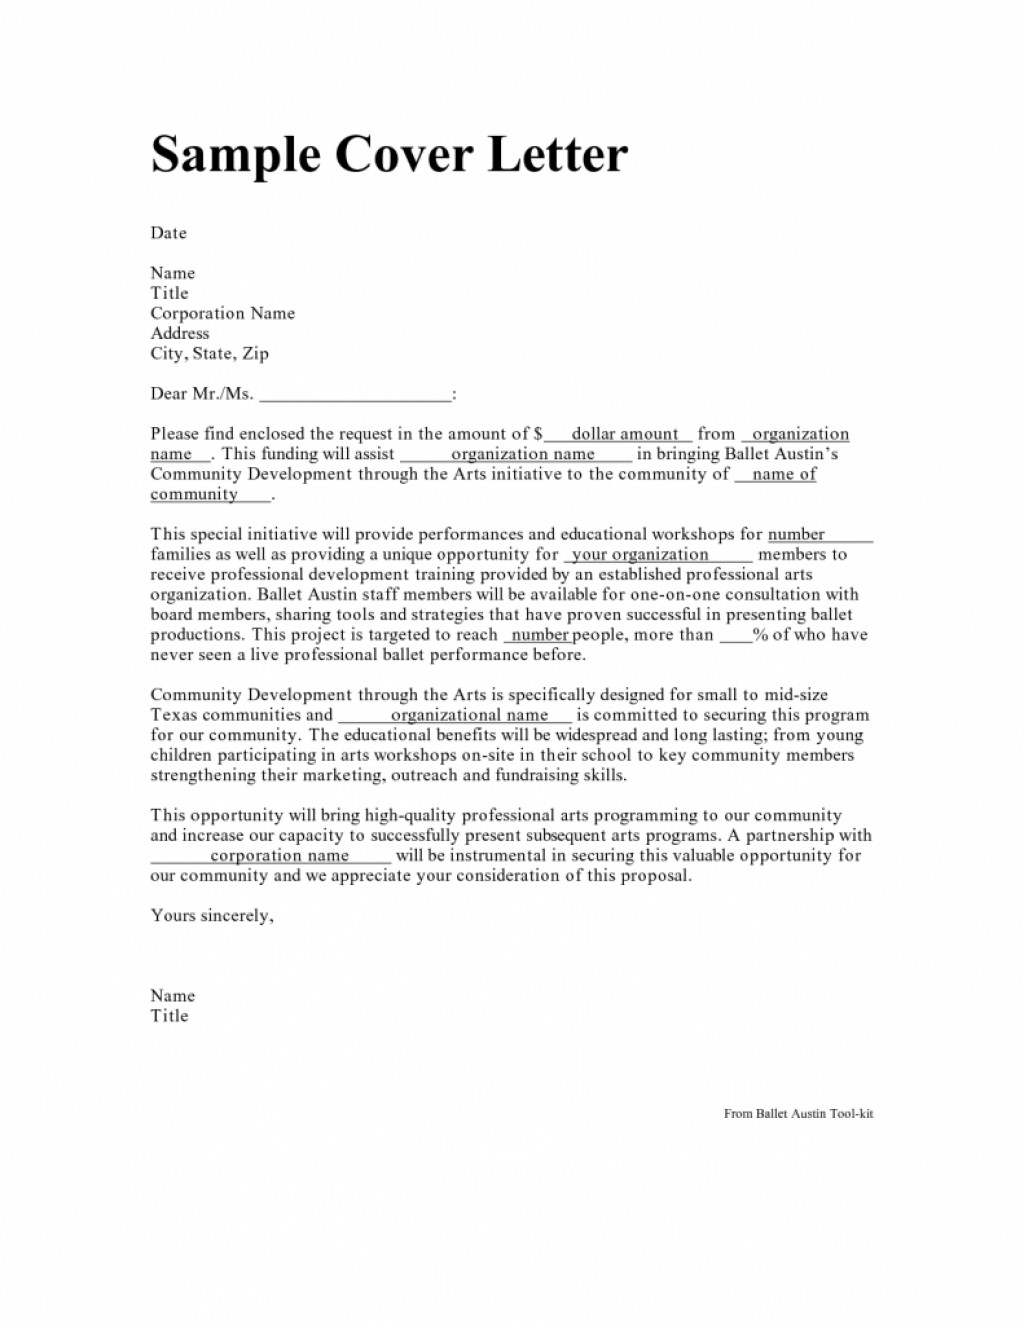 001 Essay Cover Letter Marvelous Sample College Examples Mla Large